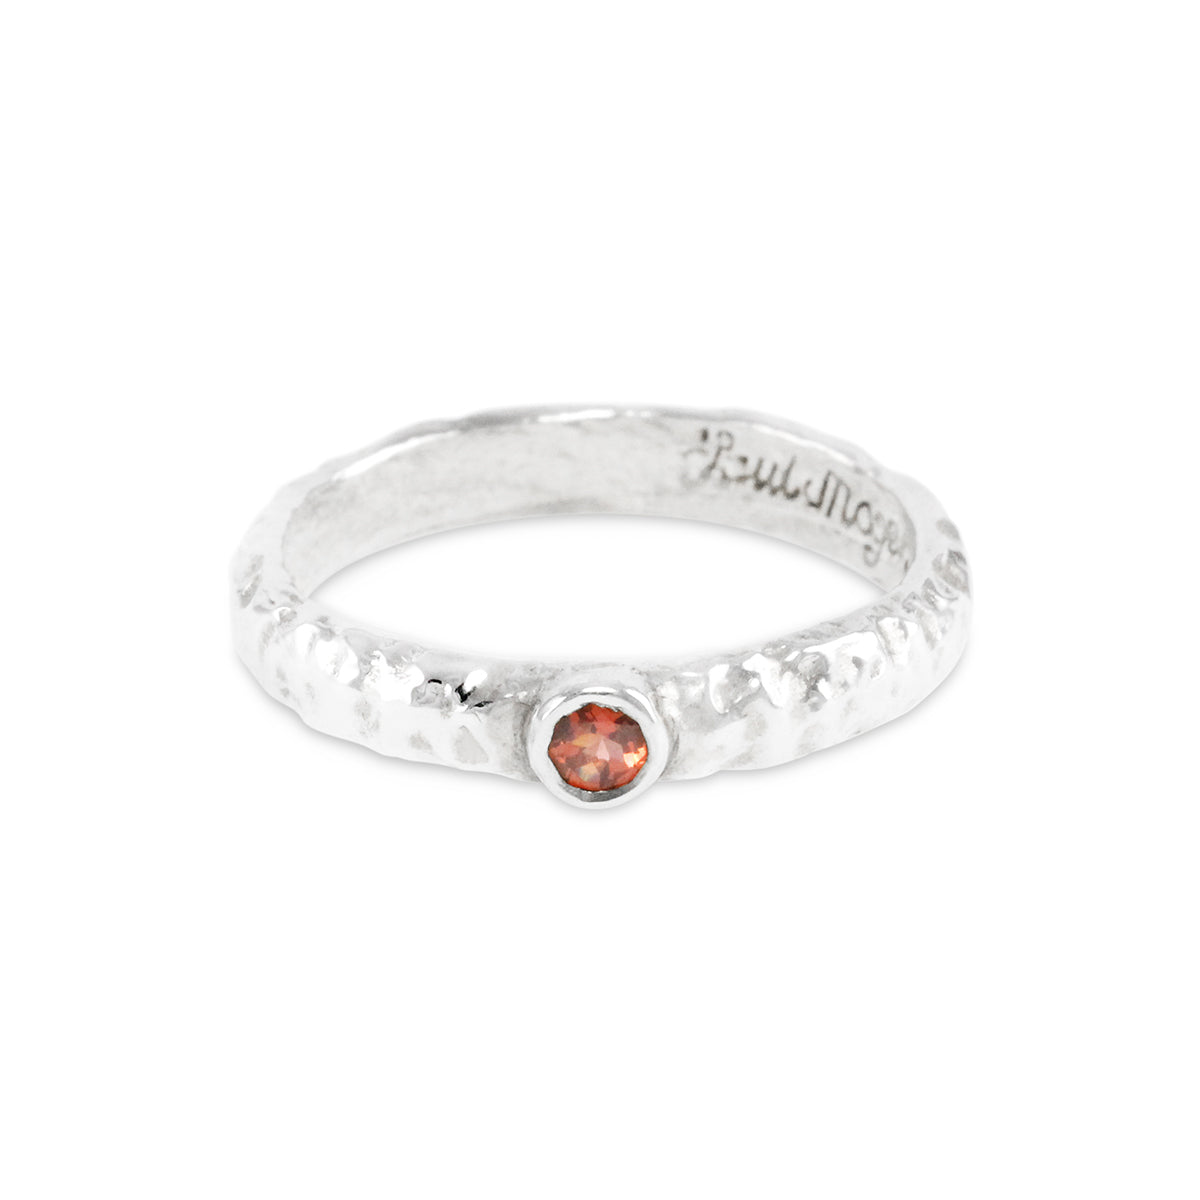 Vero ring in sterling silver set with 3mm garnet